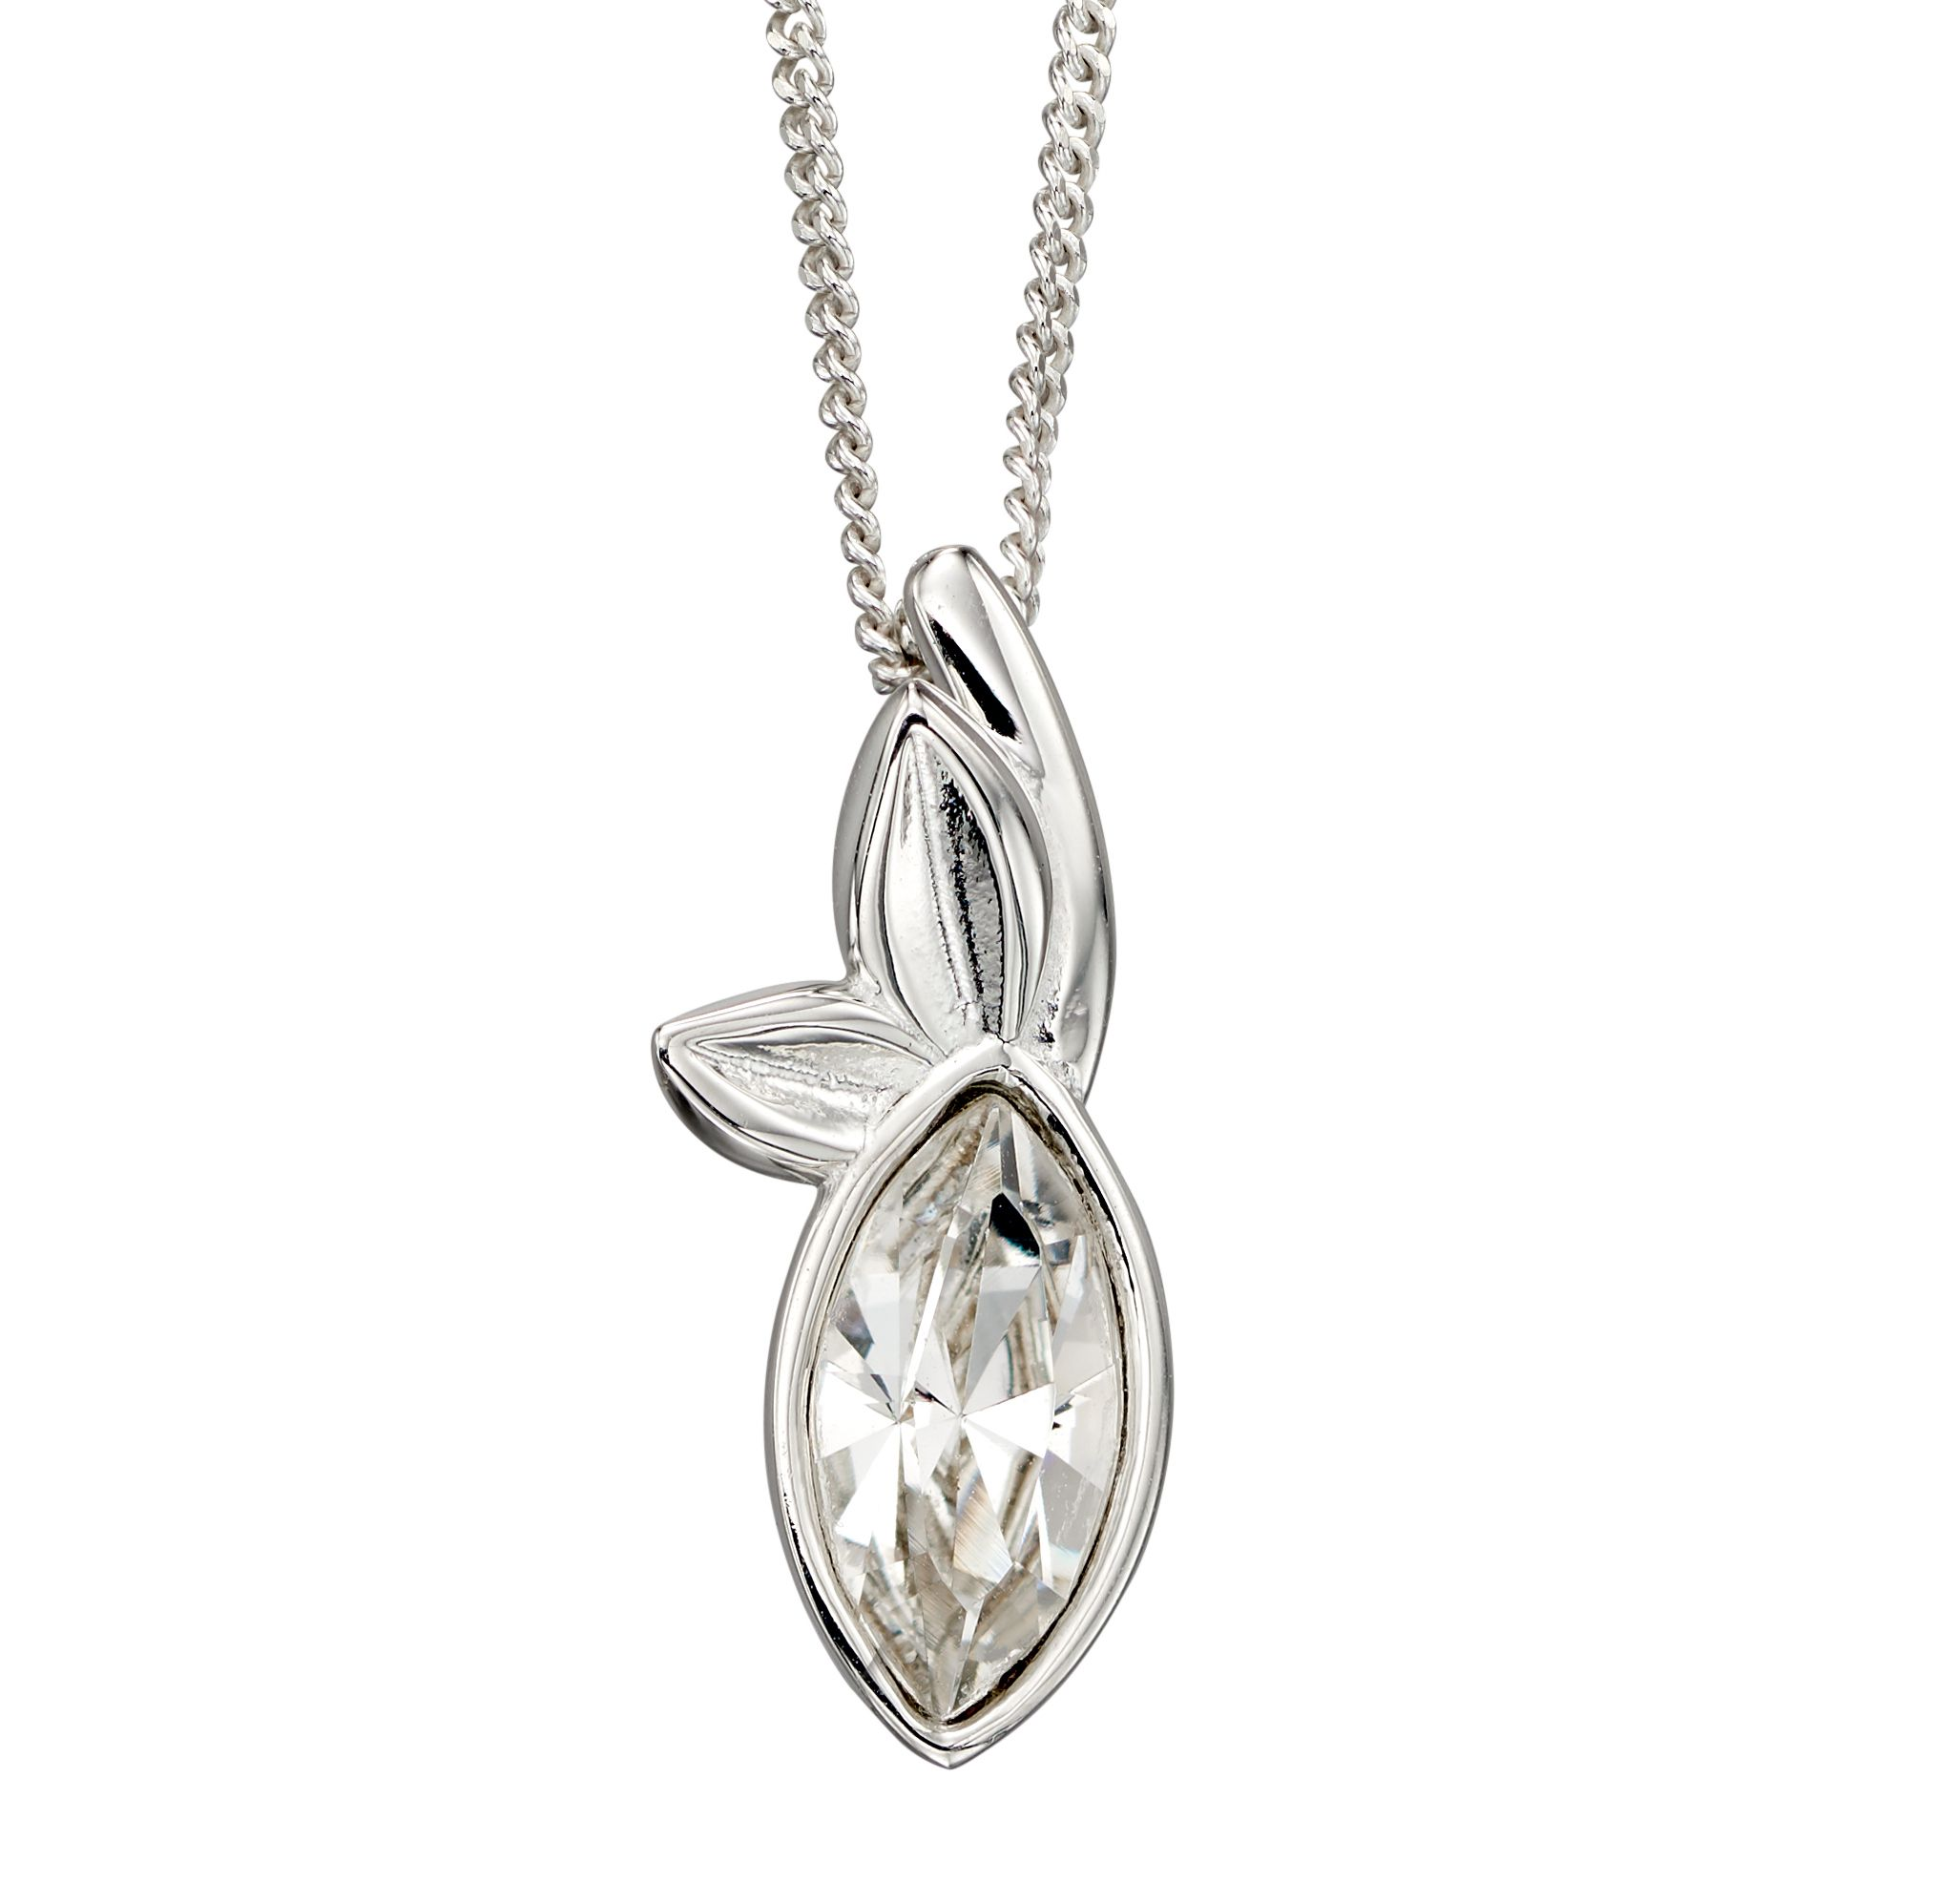 Elements Silver Womens 925 Sterling Silver Clear Crystal by Swarovski Leaf Navette Pendant Necklace of Length 46cm